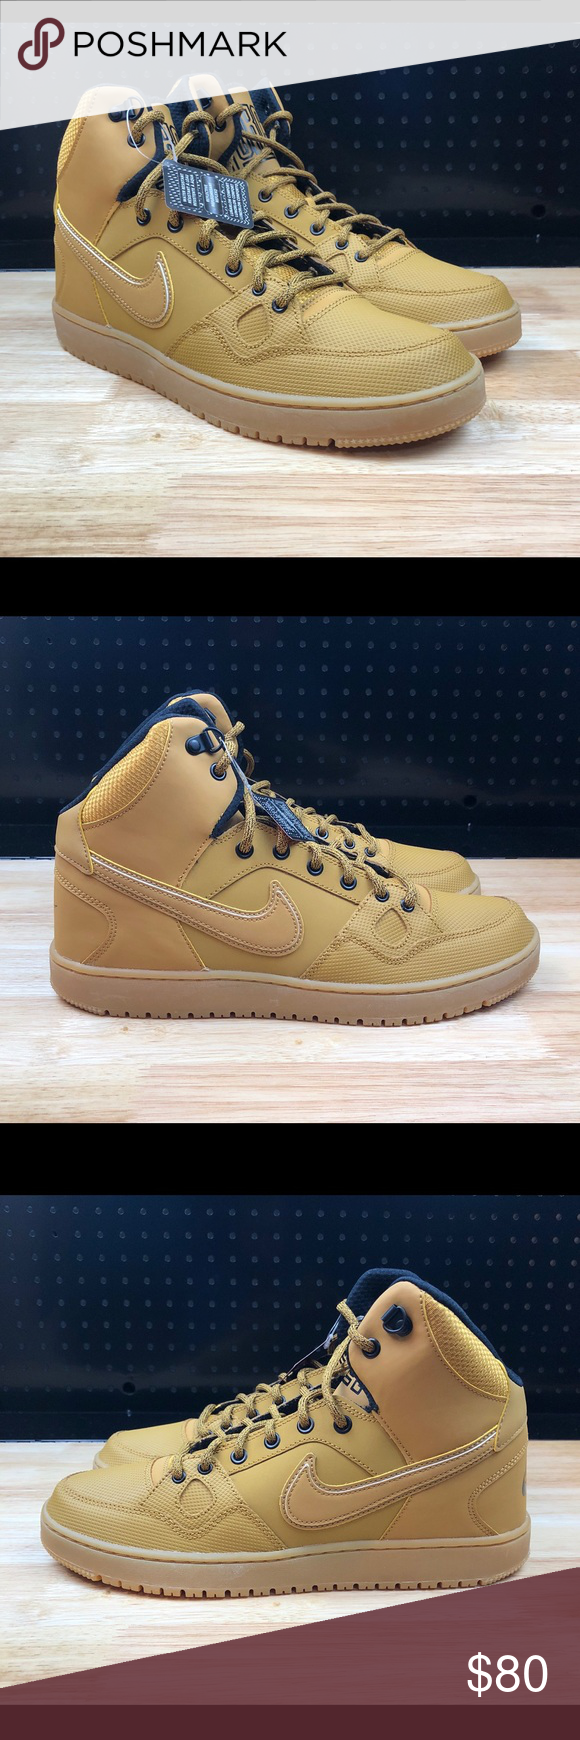 3dd5ef384ca0 Nike Men s Son of Force Mid Winter Basketball New NIKE Men s Son of Force  Mid Winter Basketball Shoes - Brown Wheat - Men s Size 10 - New Without Box  - FAST ...